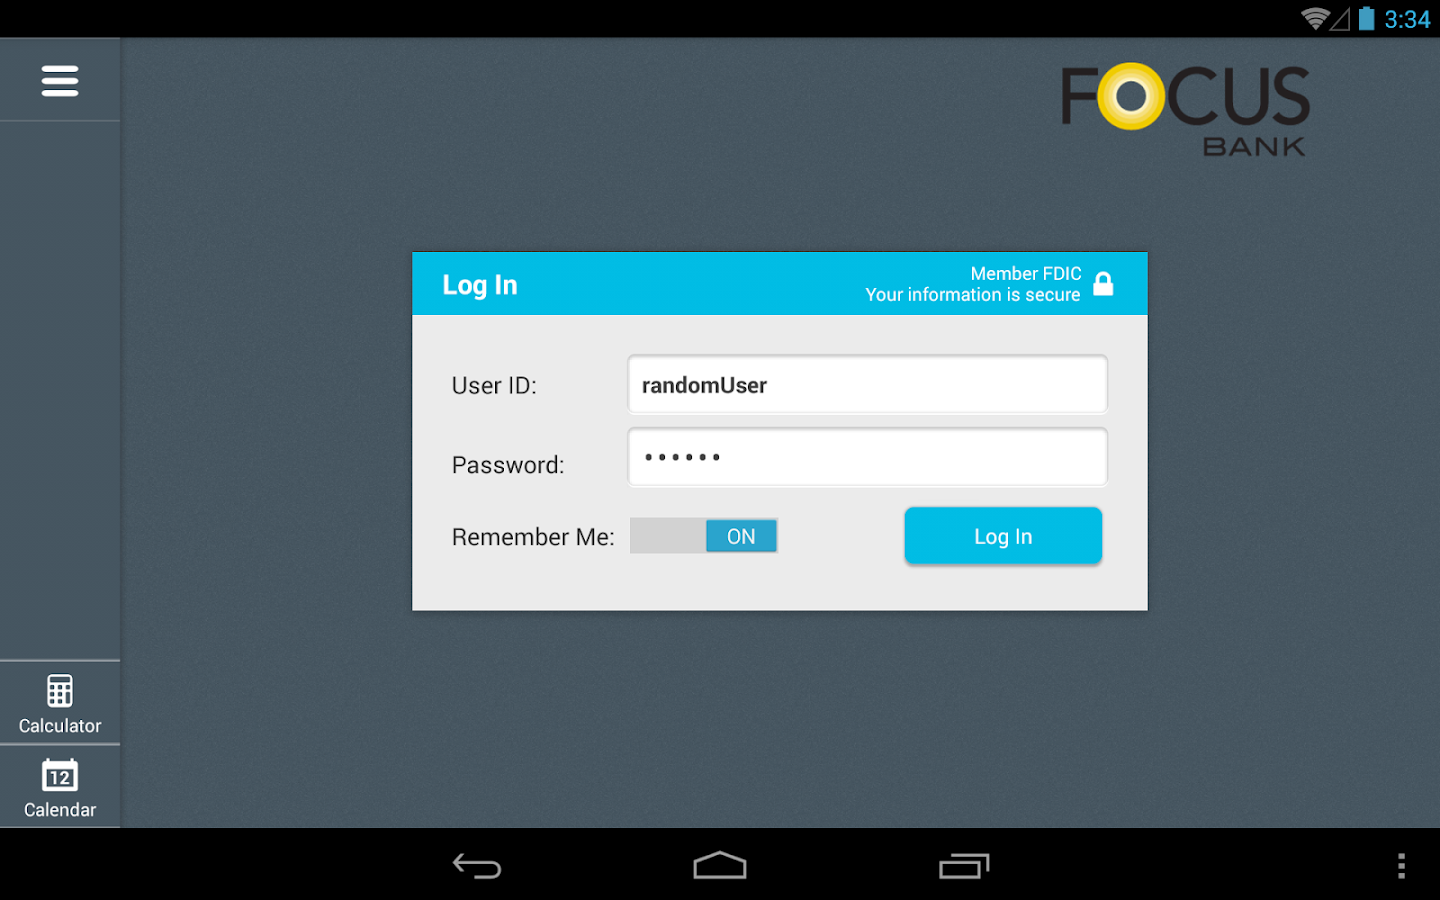 Focus bank mobile for tablet android apps on google play for Focos bano